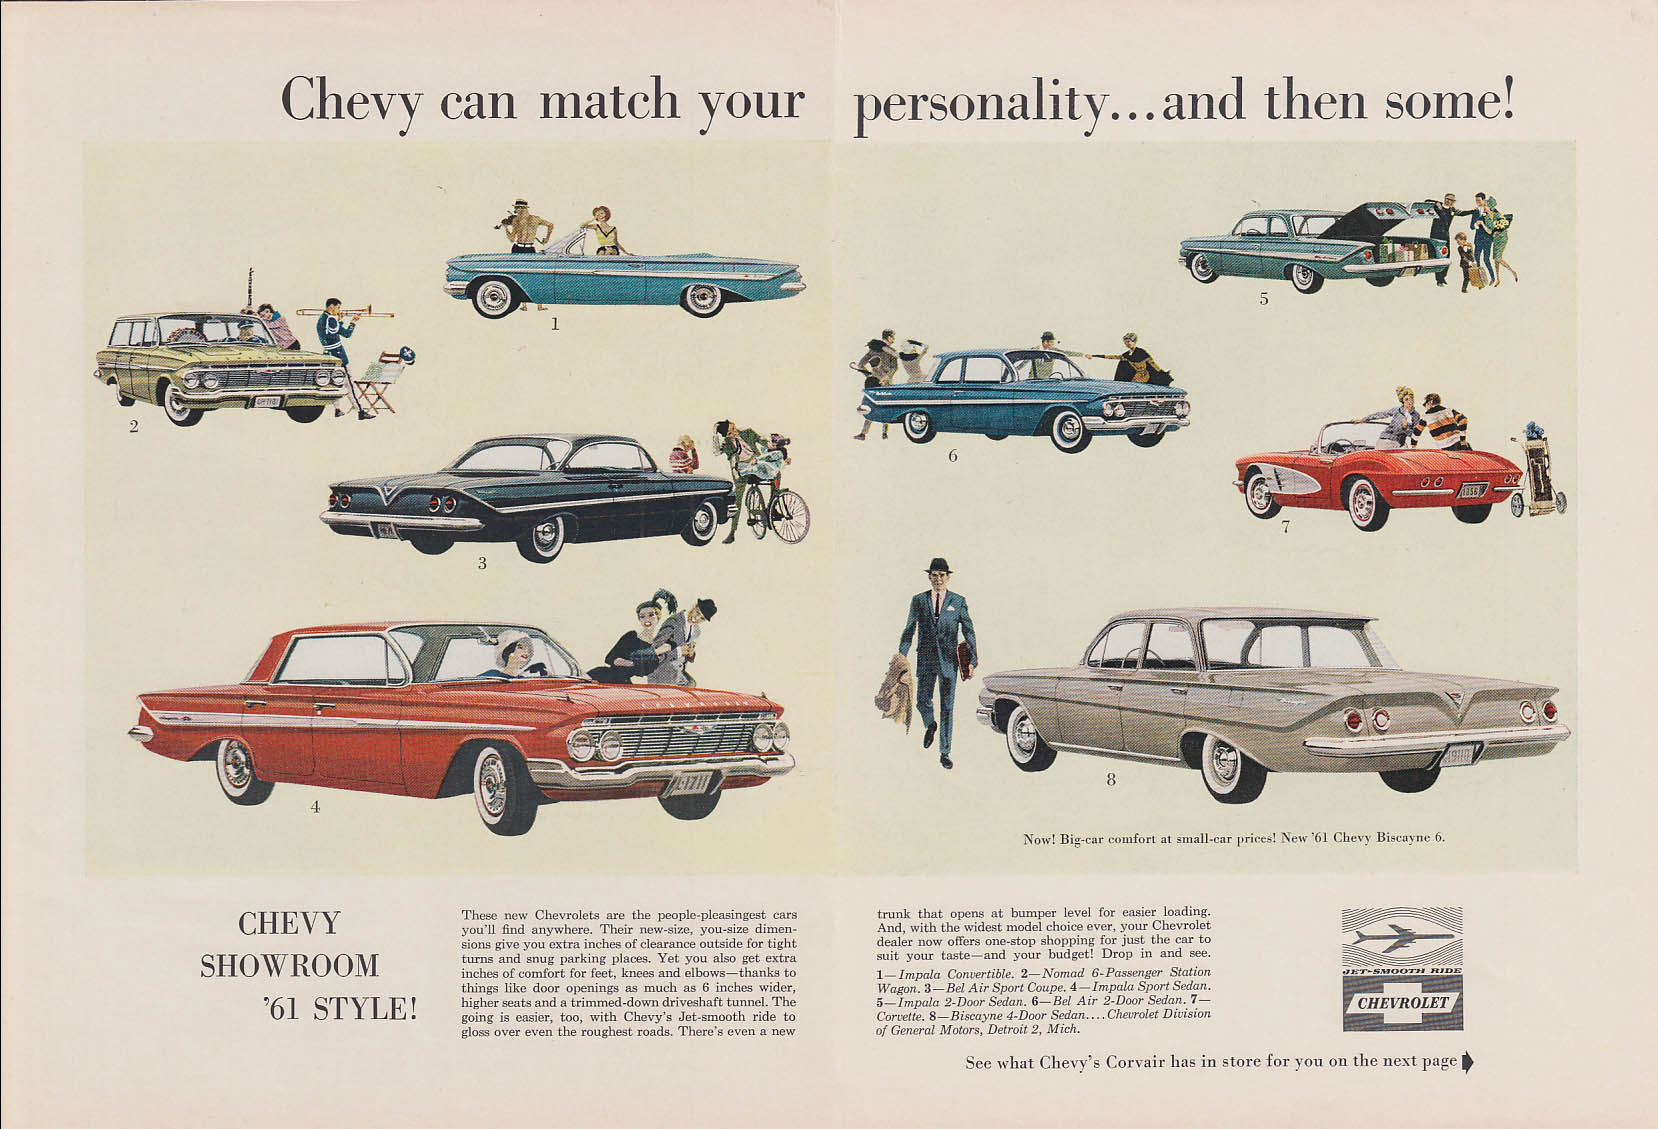 Match your personality Chevrolet Impala Corvair & Corvette ad 1961 NY